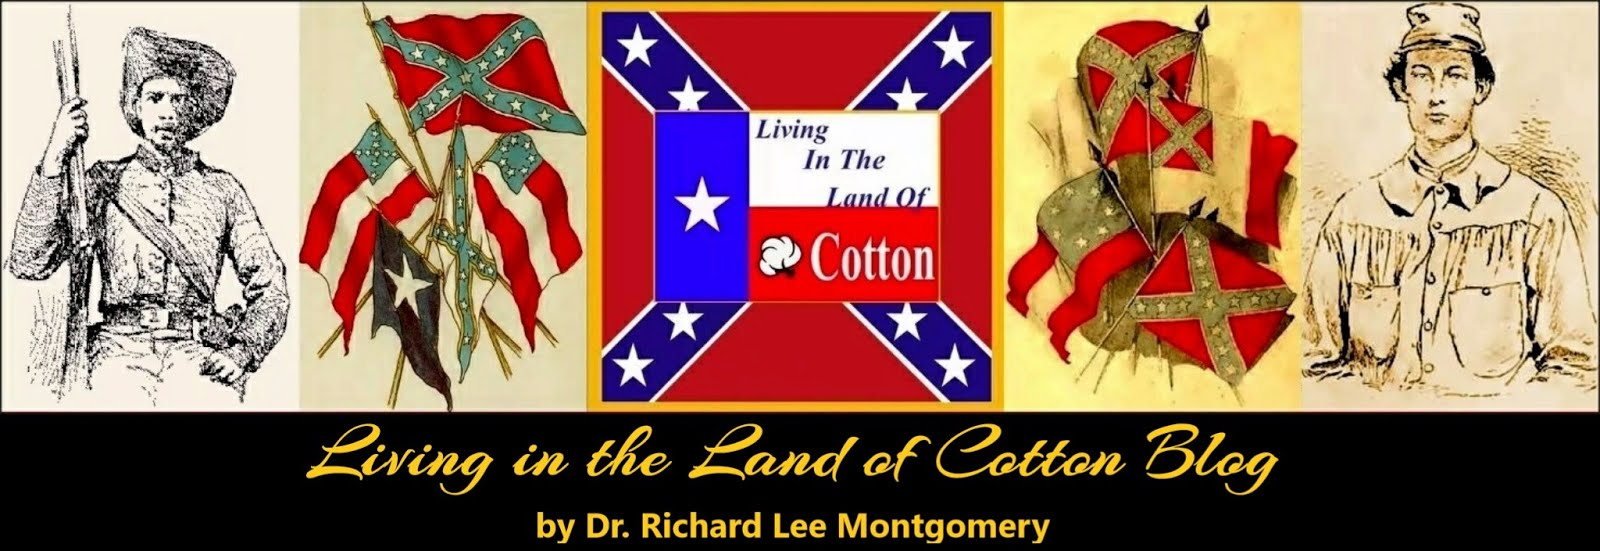 Living in the Land of Cotton